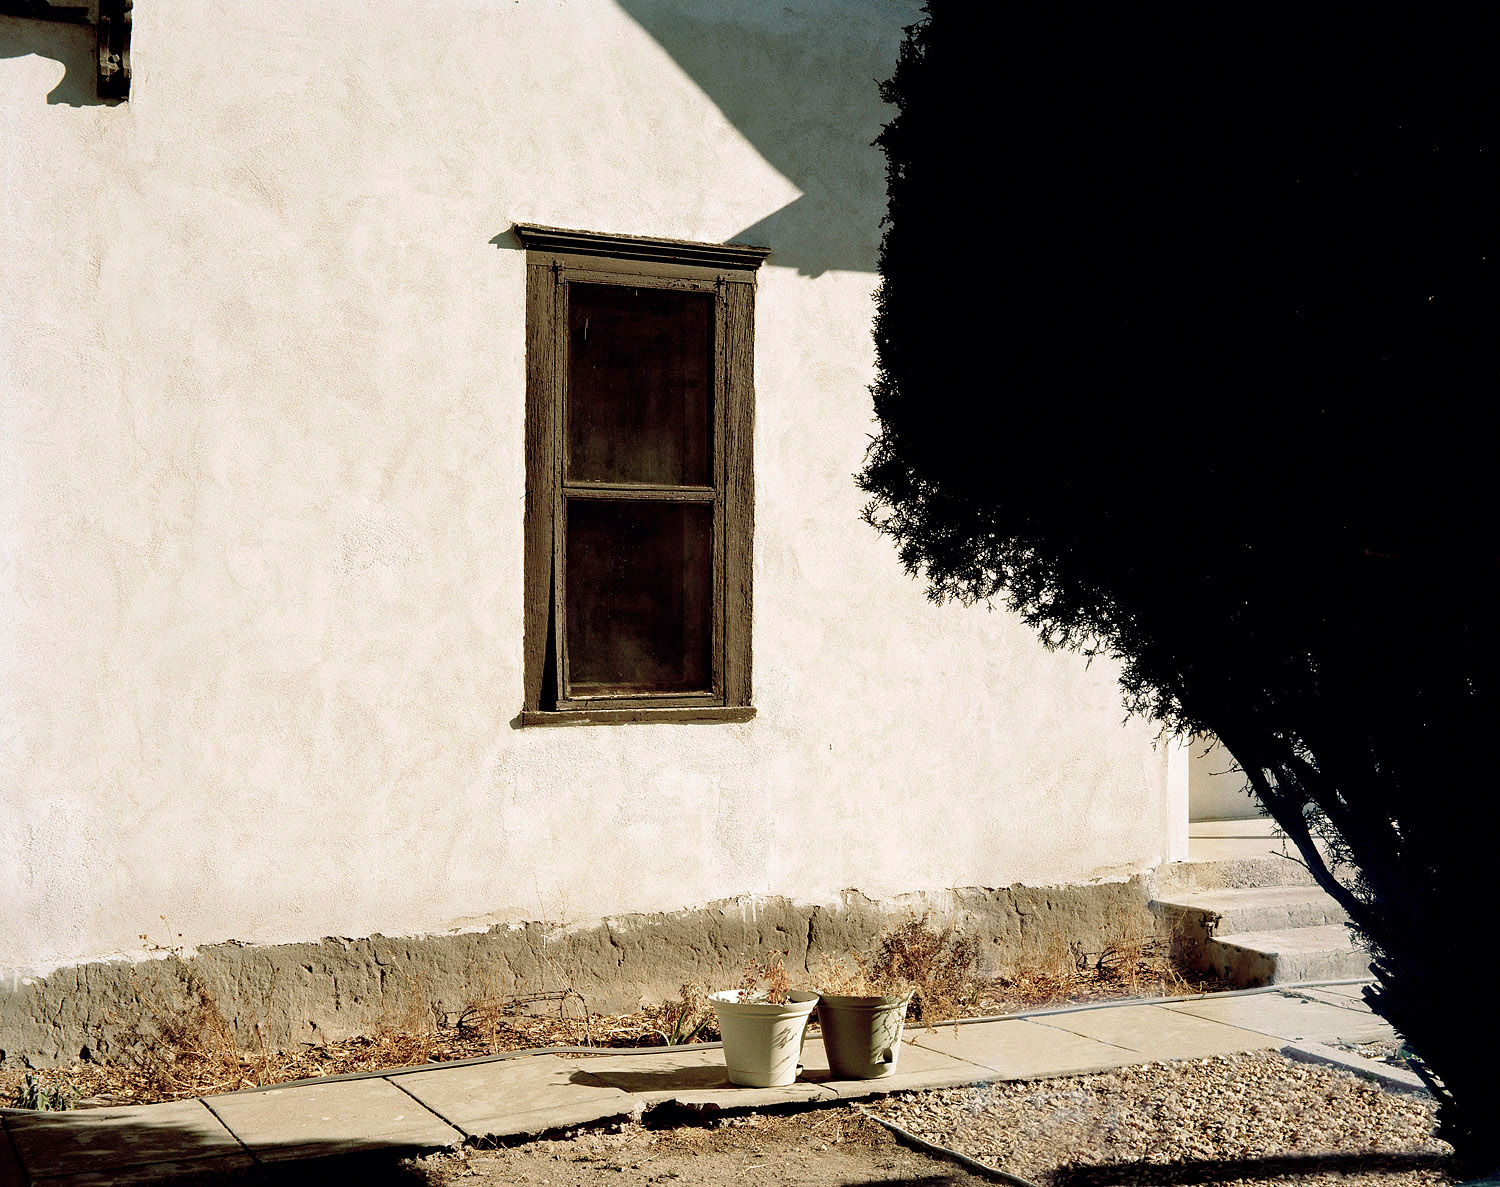 Window and Pots